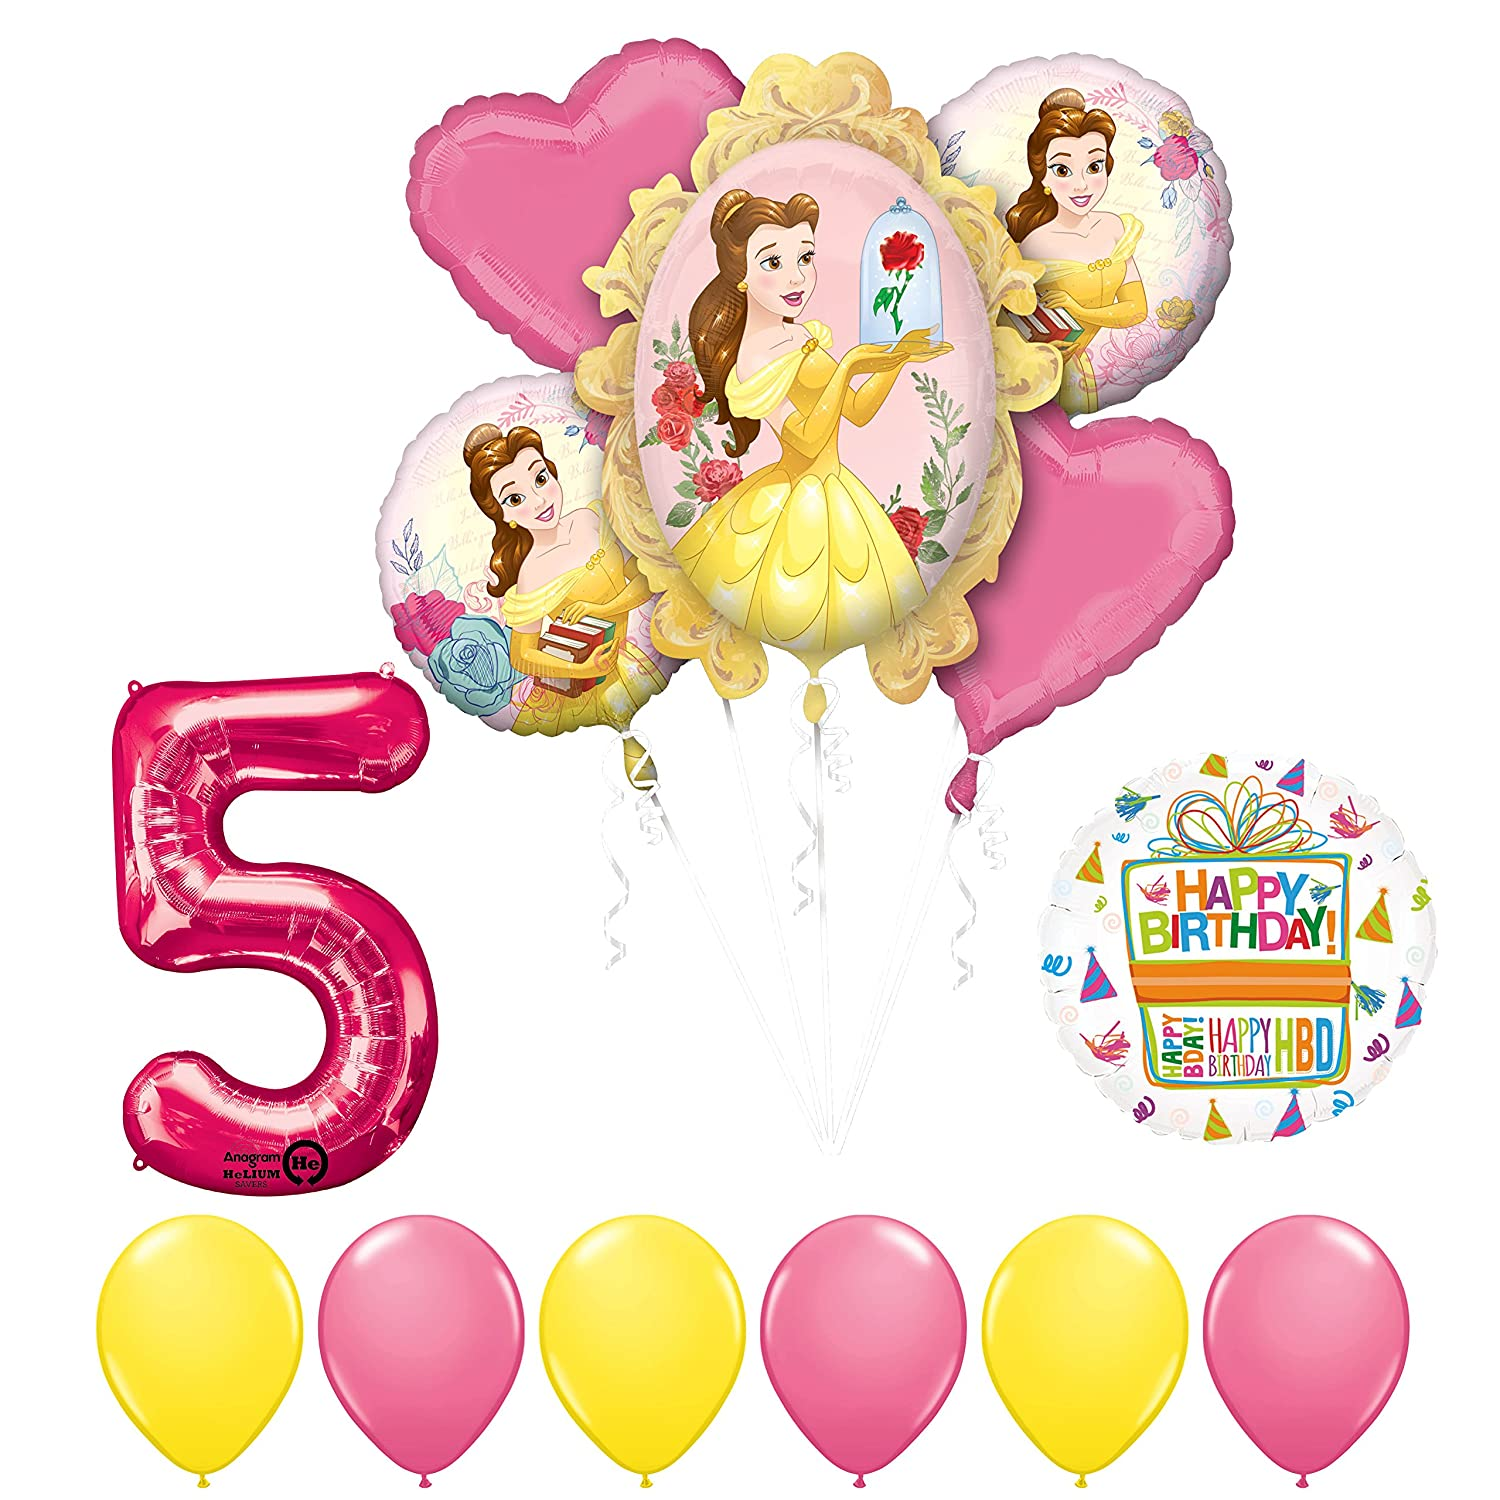 Amazon Beauty And The Beast 5th Birthday Party Balloon Supplies Decorations Toys Games